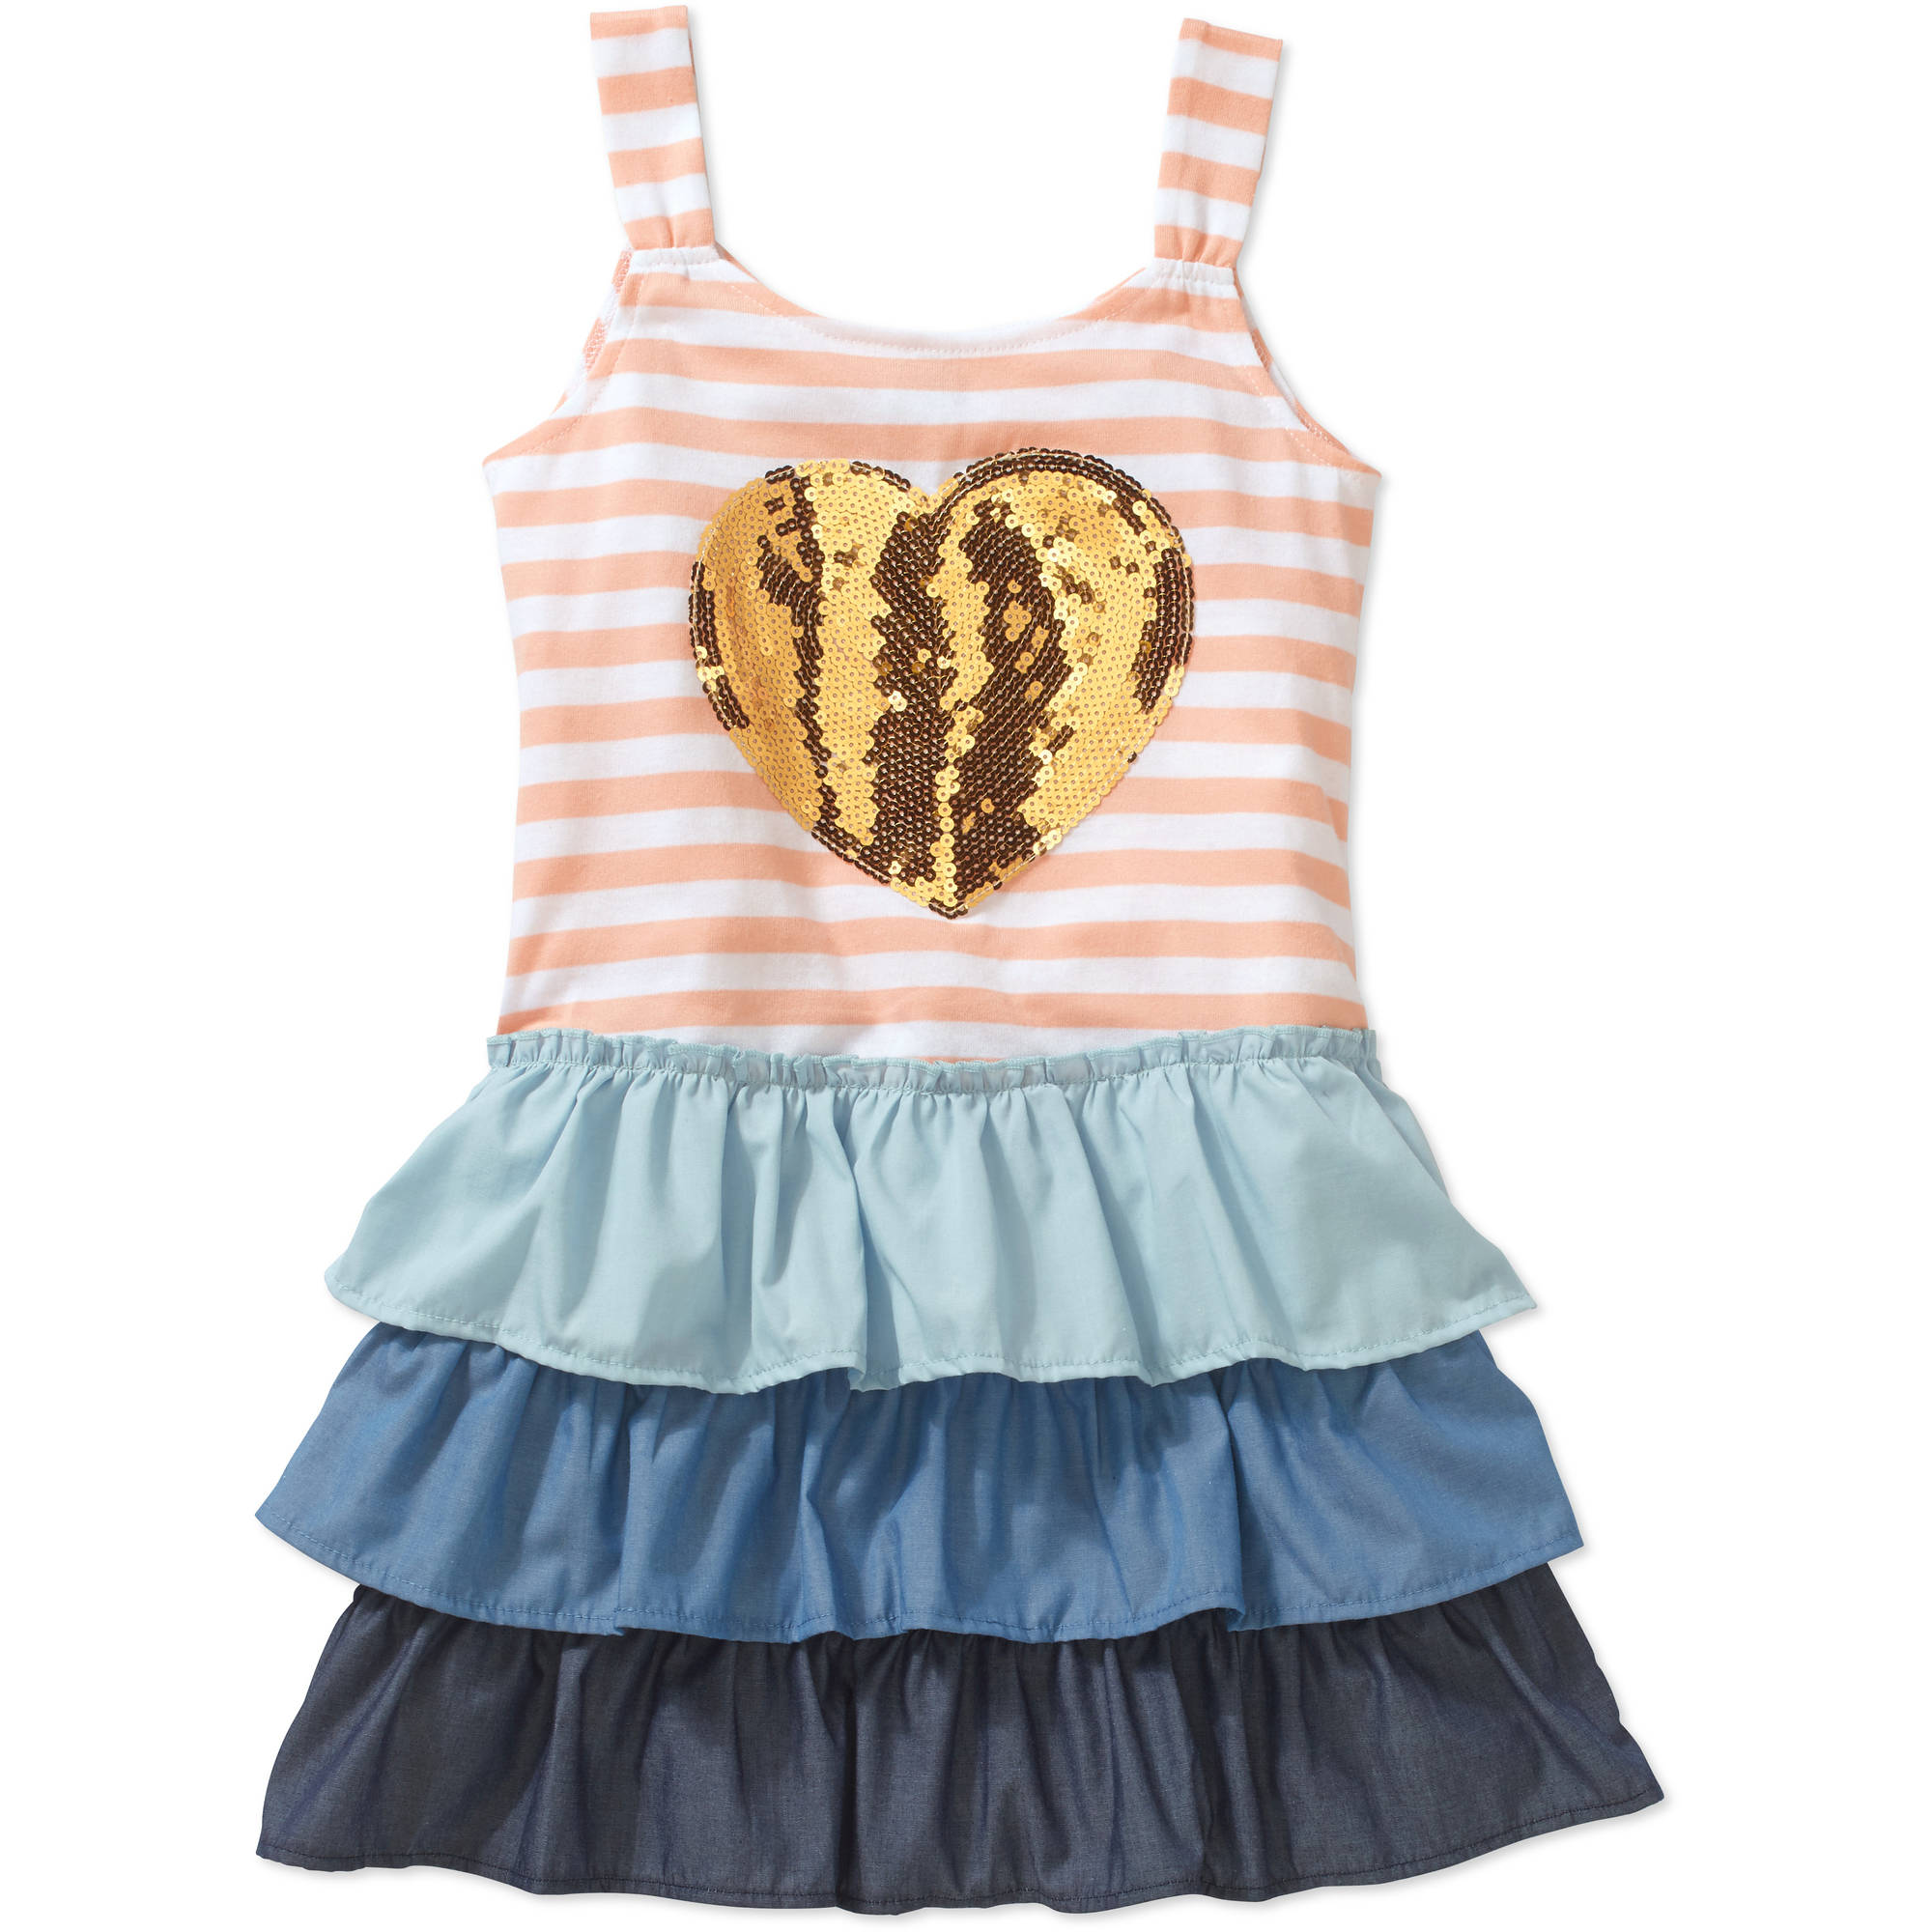 Girls Clothing Walmart Com